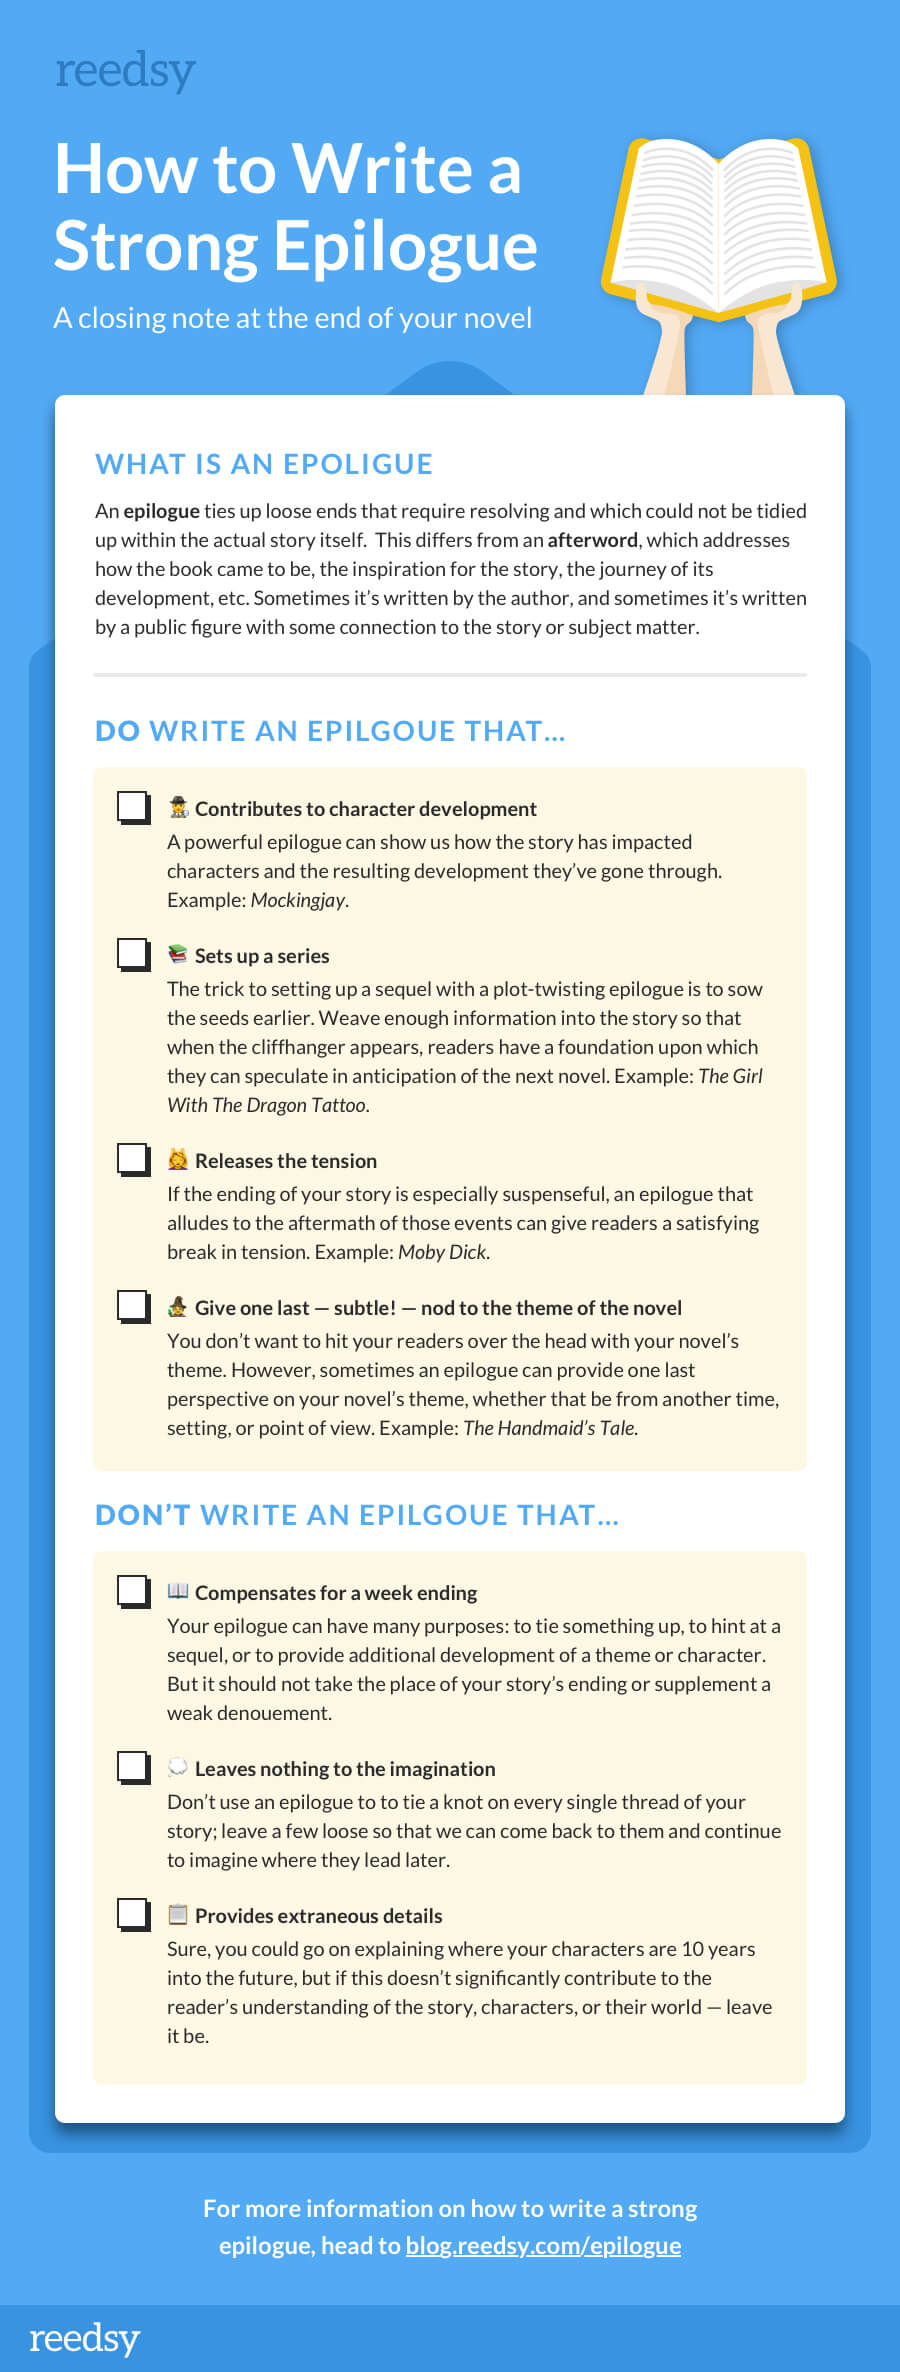 What is an Epilogue and How To Write One, According to Pro